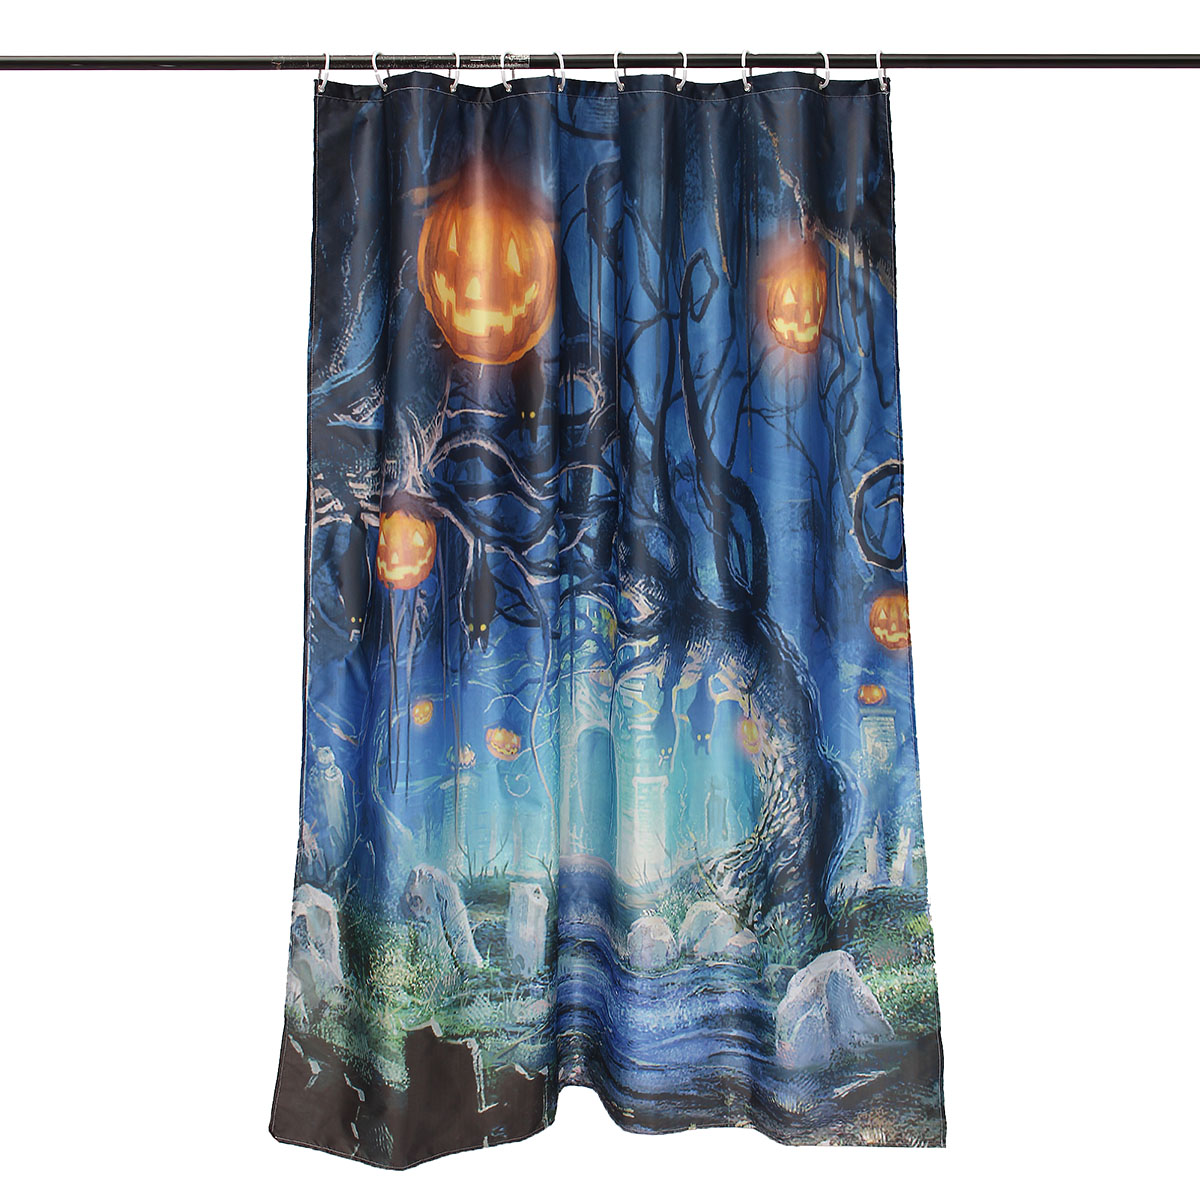 150x180cm Halloween Ghost Pumpkin Polyester Shower Curtain Bathroom Decor with 12 Hooks